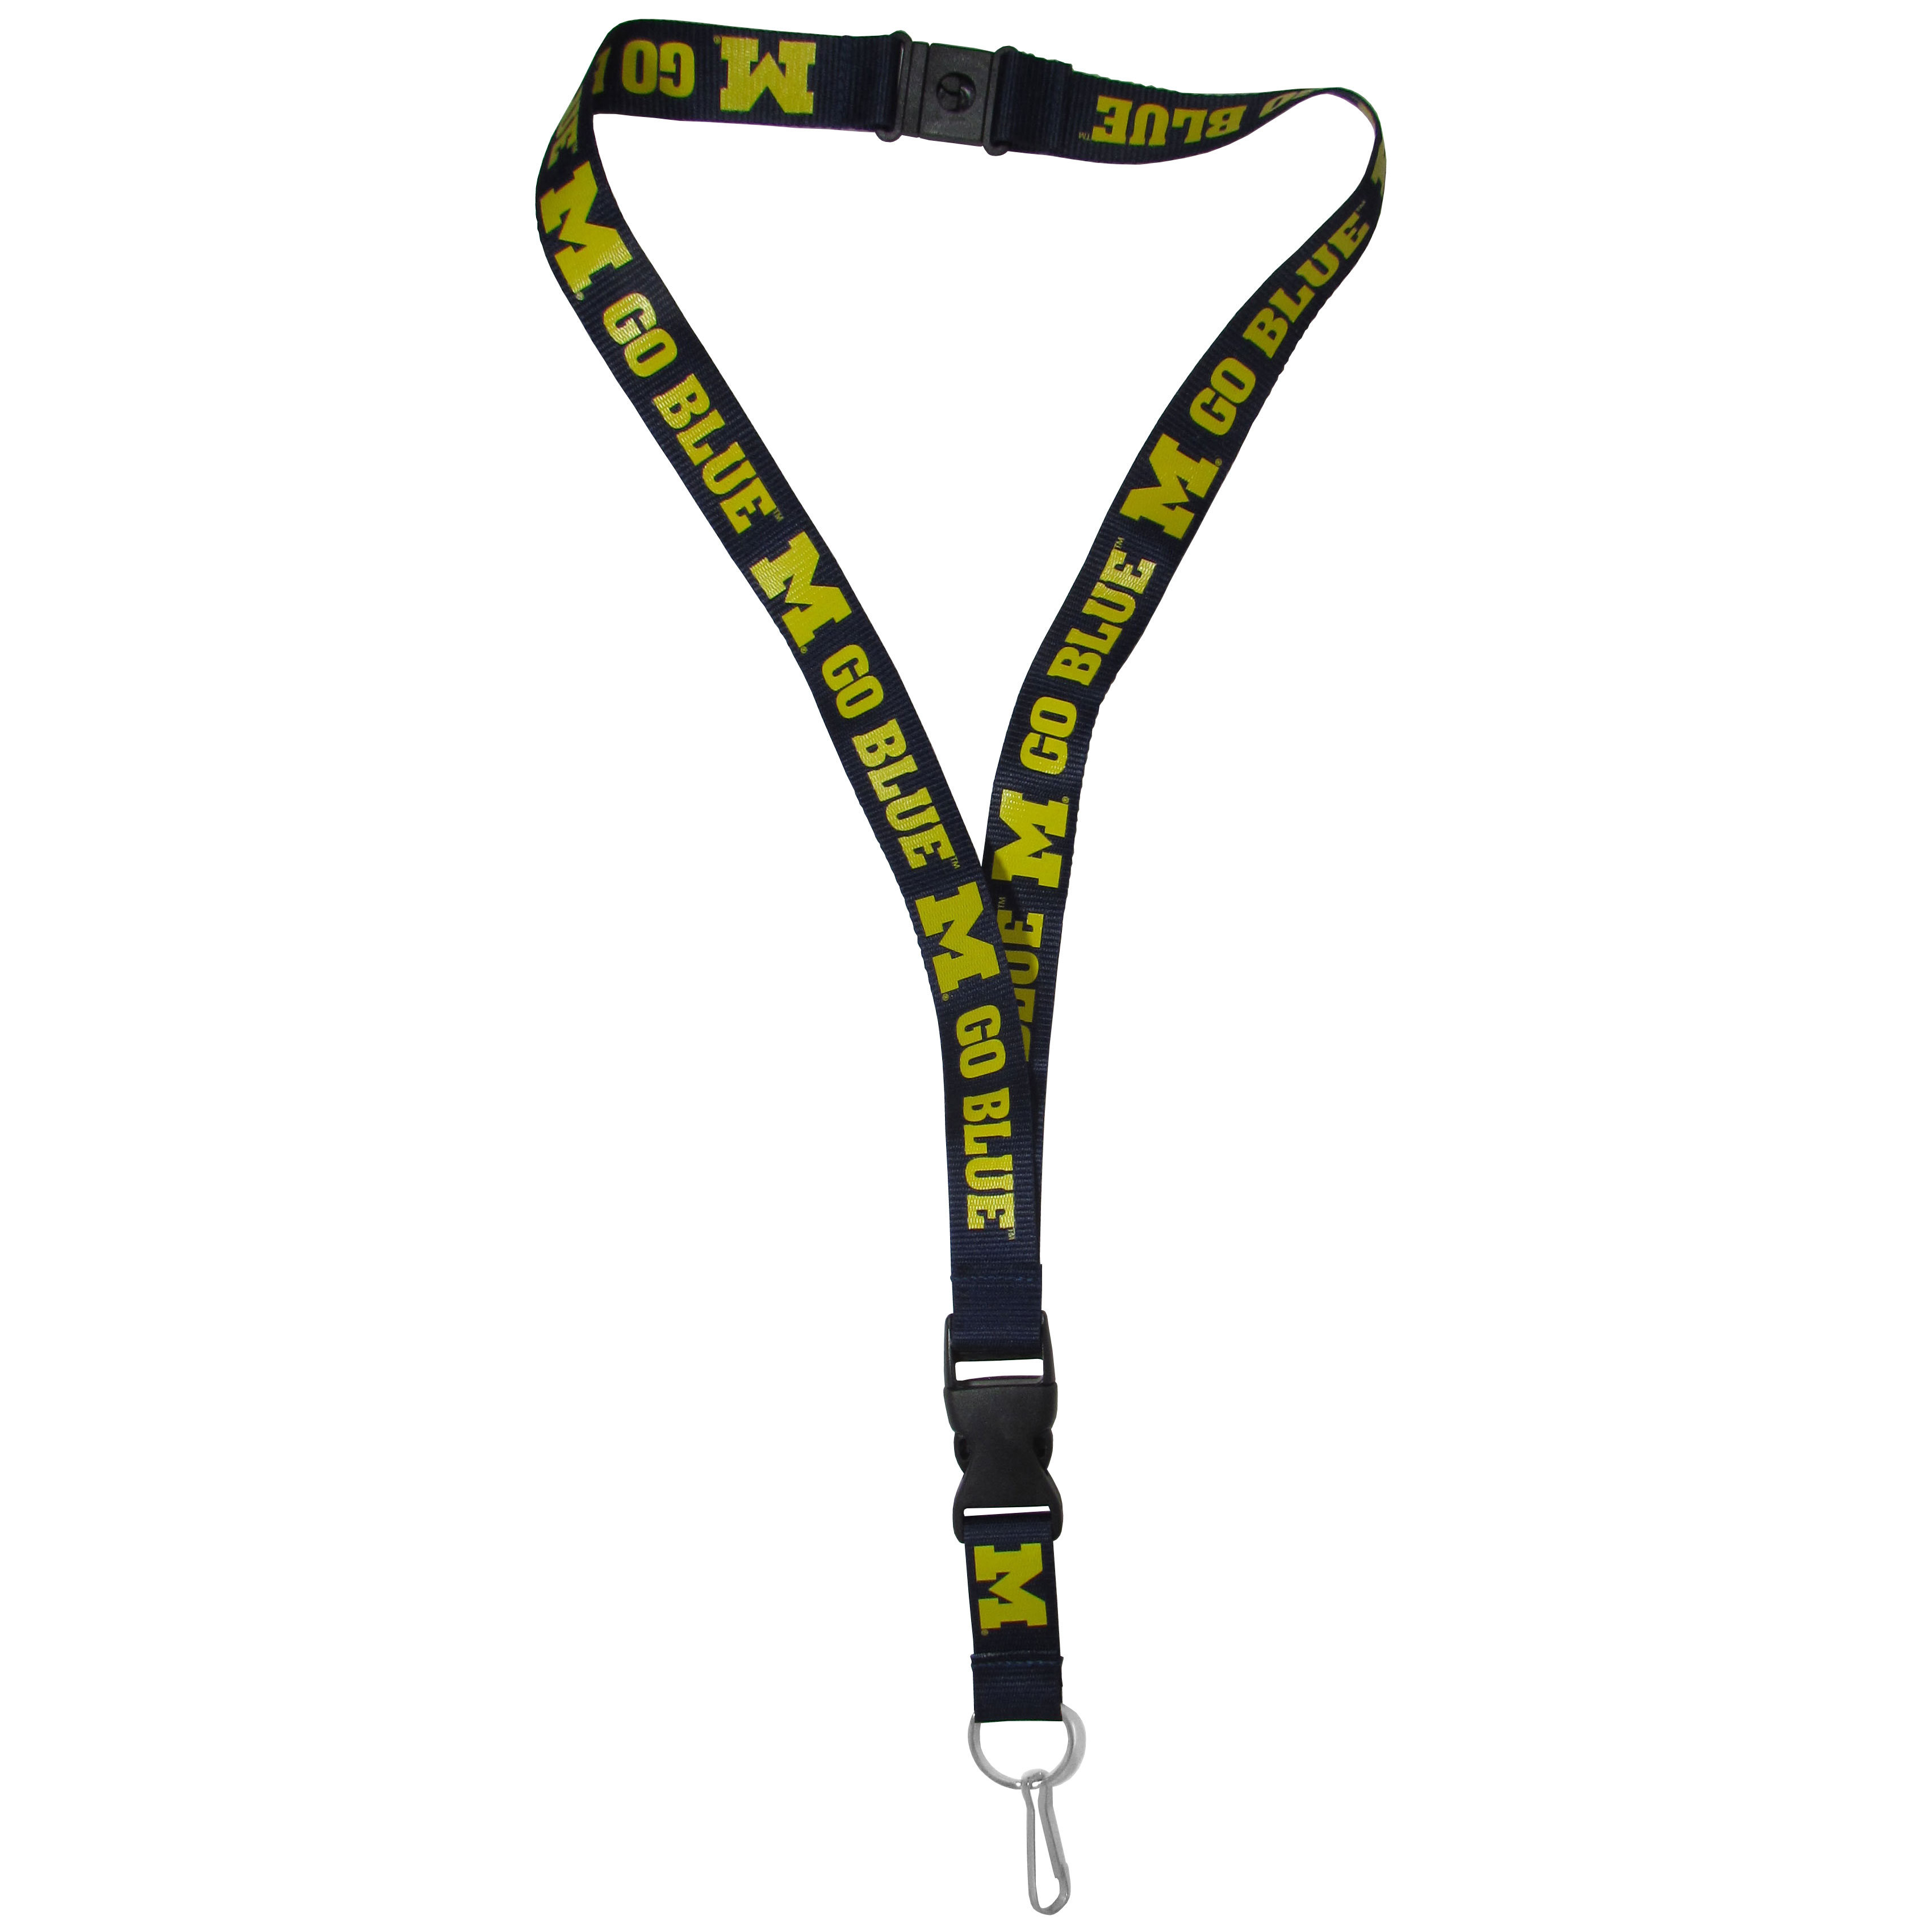 Michigan Wolverines Lanyard - Our Michigan Wolverines lanyards are a great way to show off your school pride and keep track of your keys, ID's, badges and much more. The lanyards are made of a comfortable nylon with screen printed school logos. They feature safety closures that disconnect if the lanyard becomes caught on something.